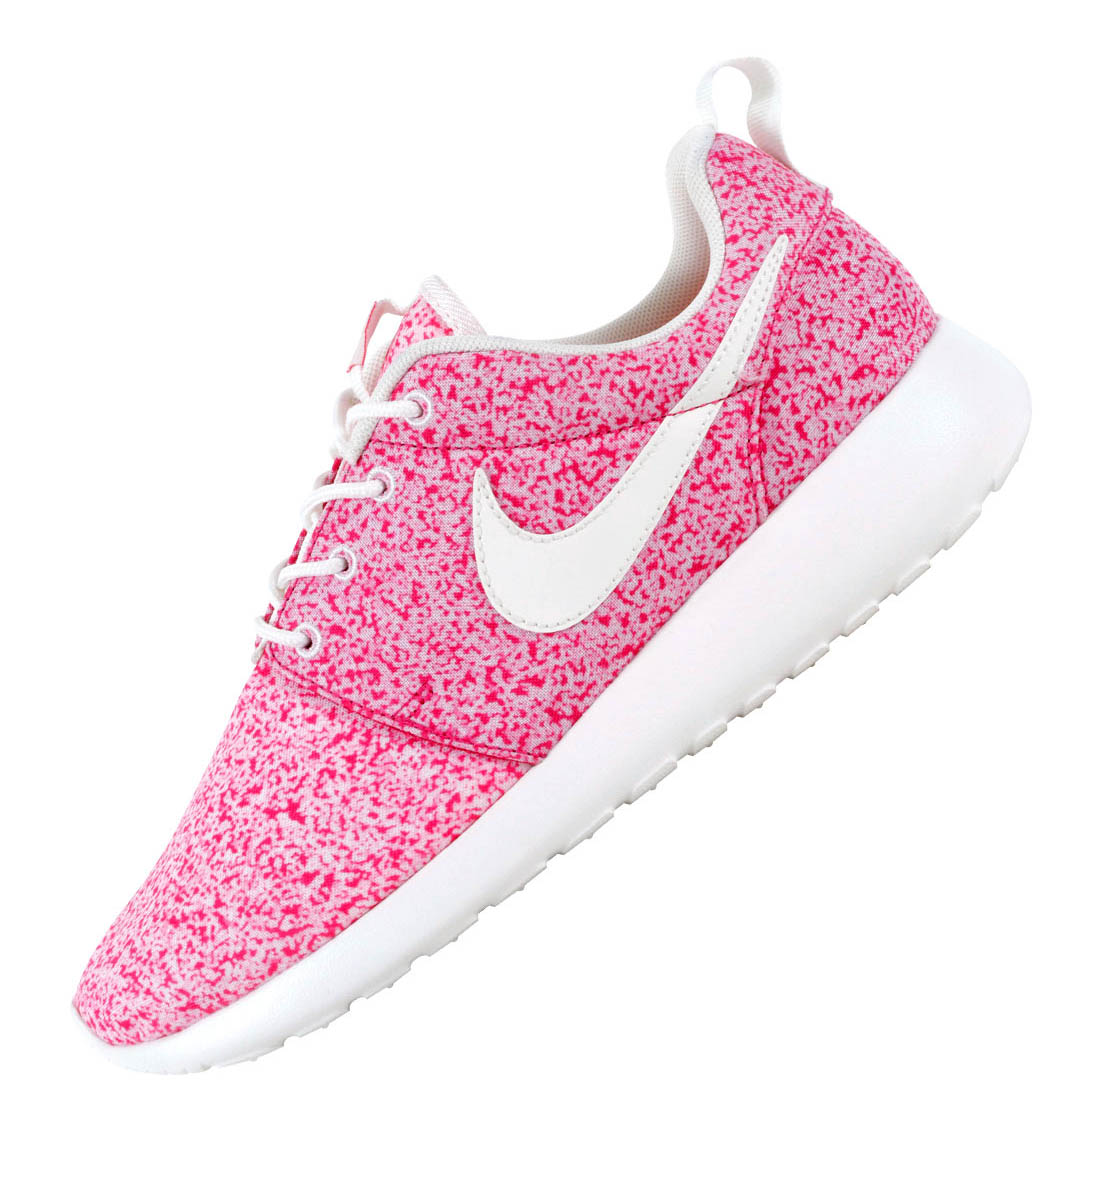 Nike Roshe Run WMNS - Speckle Pack | Sole Collector